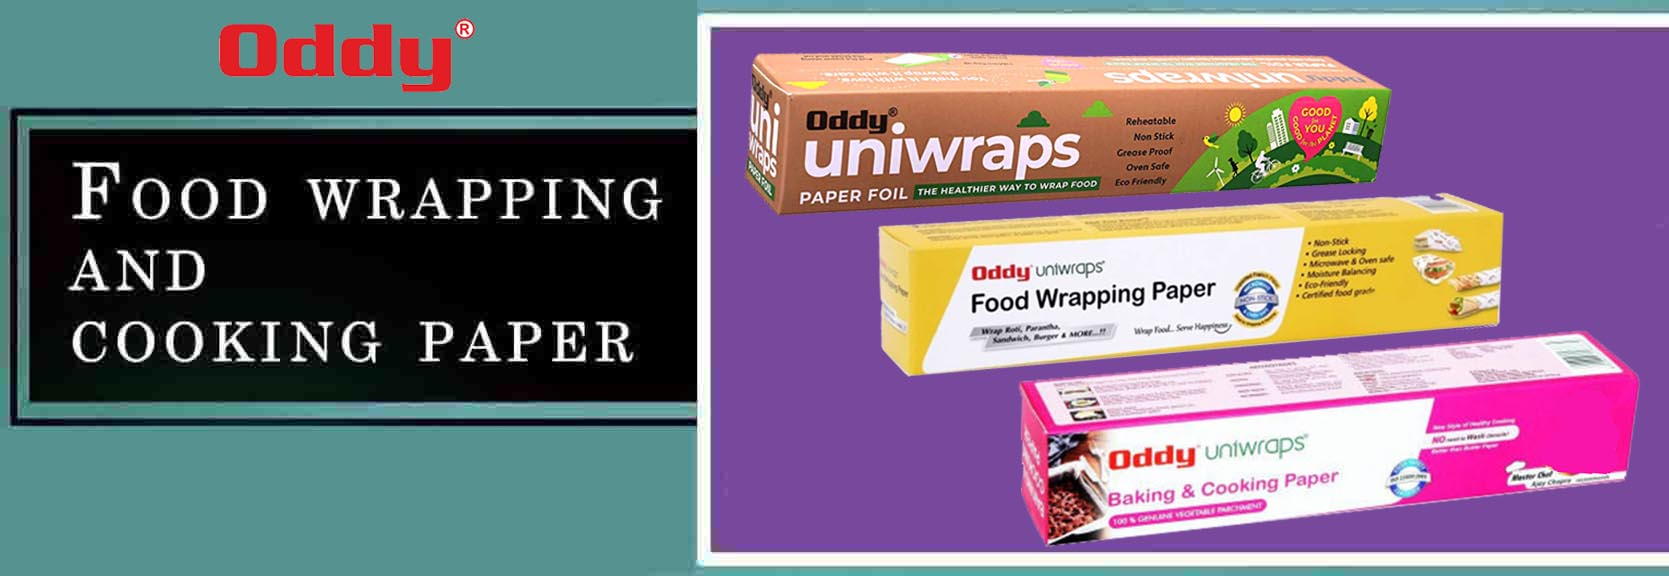 ODDY Food Wrapping and Cooking Paper